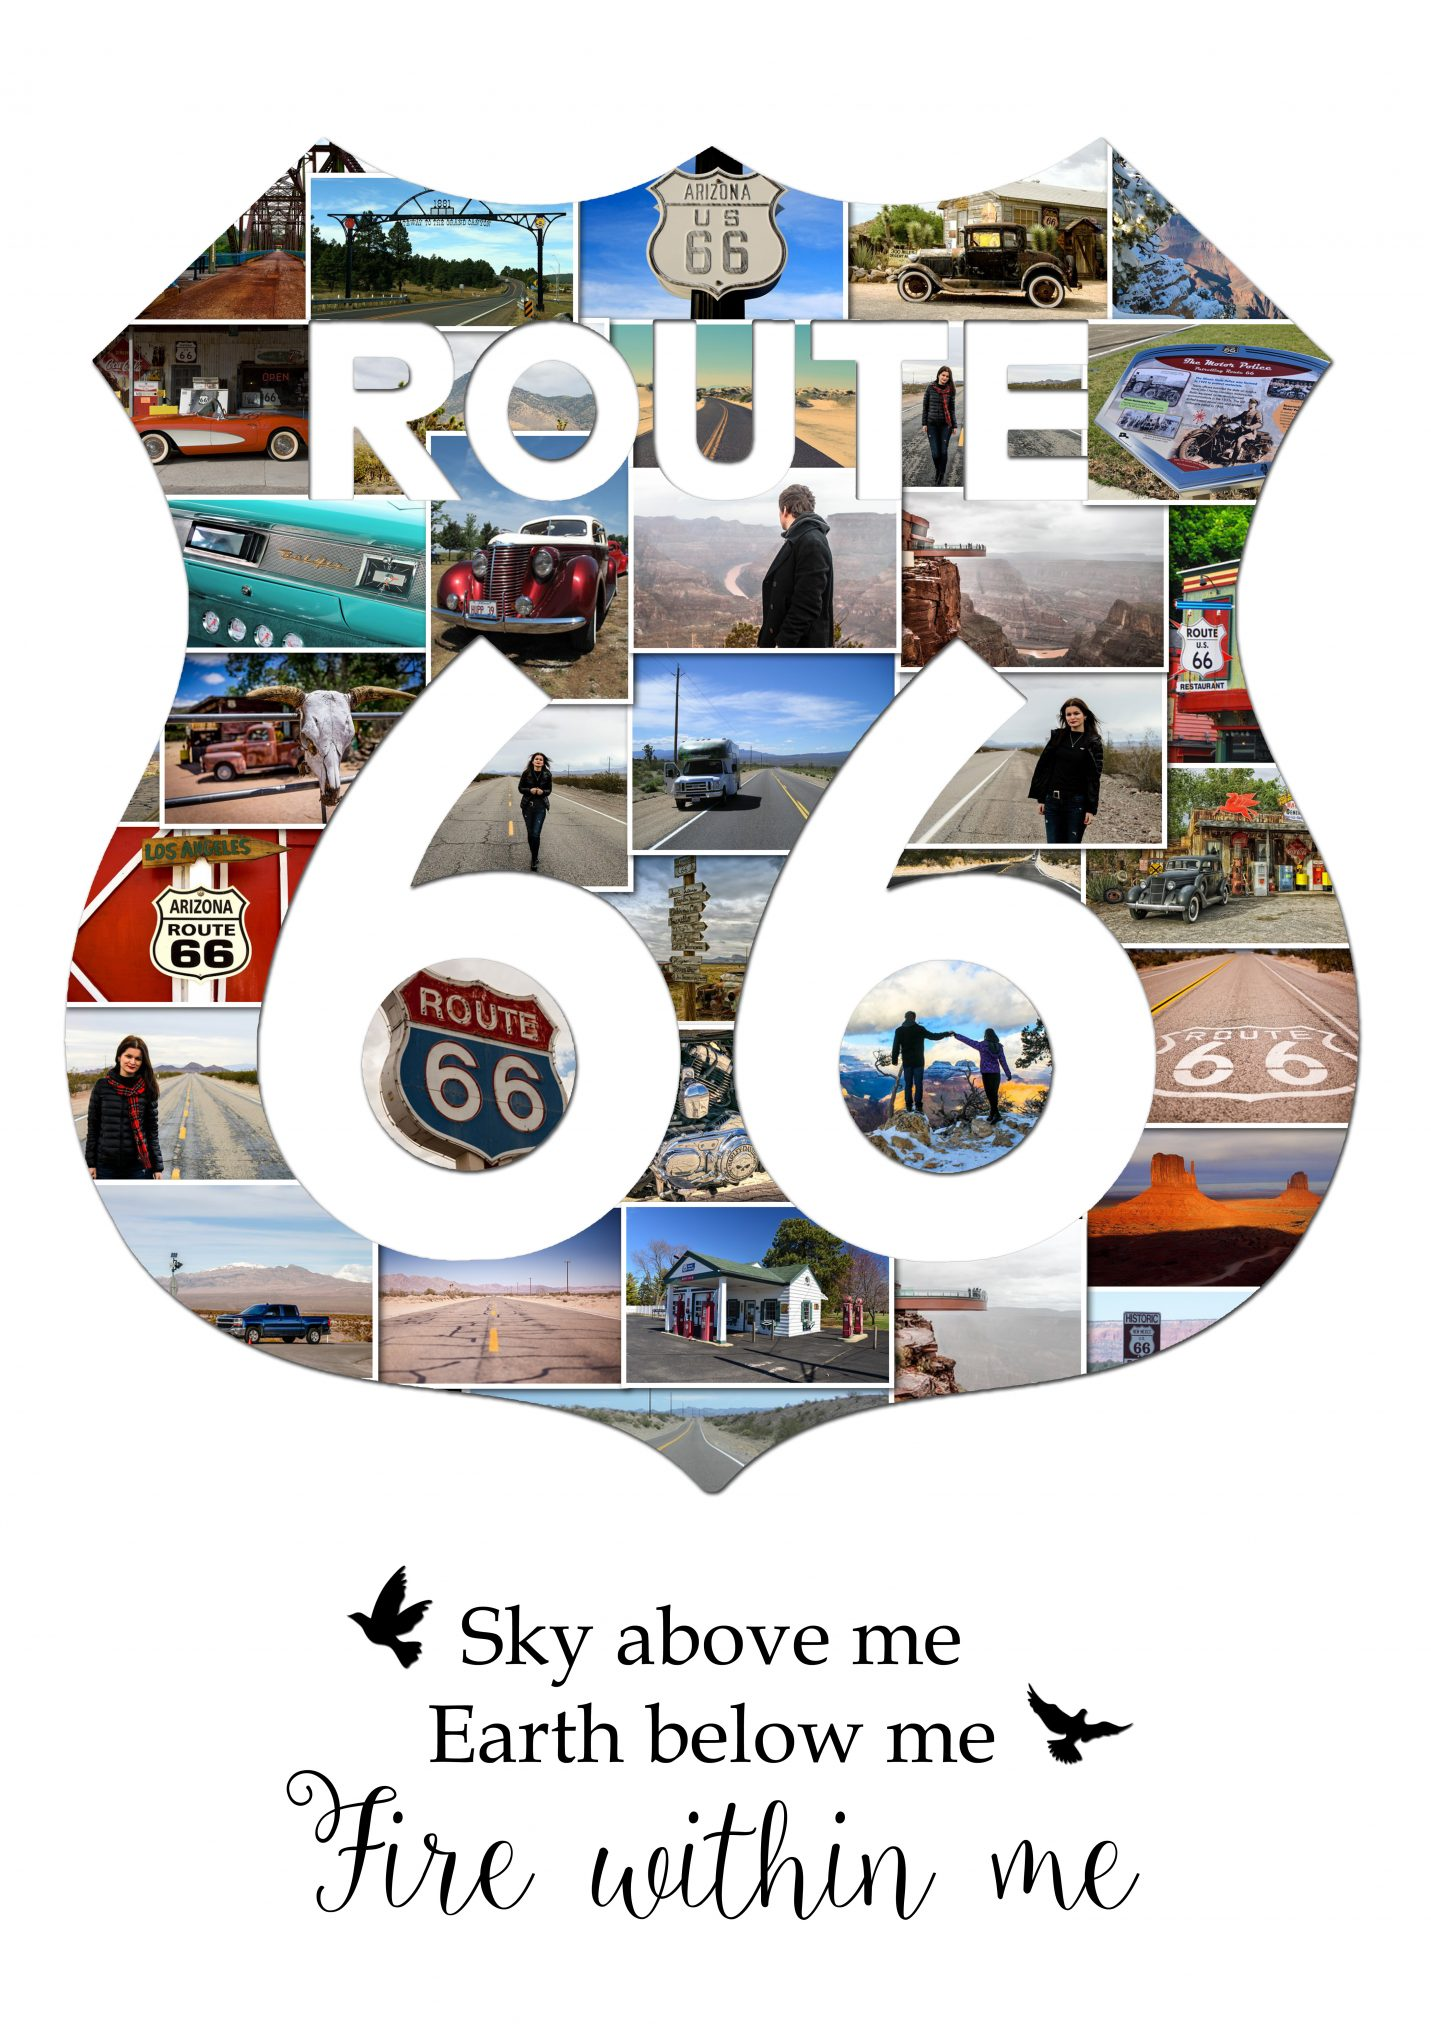 Route 66 Usa Road Trip Photo Collage Memory Collage